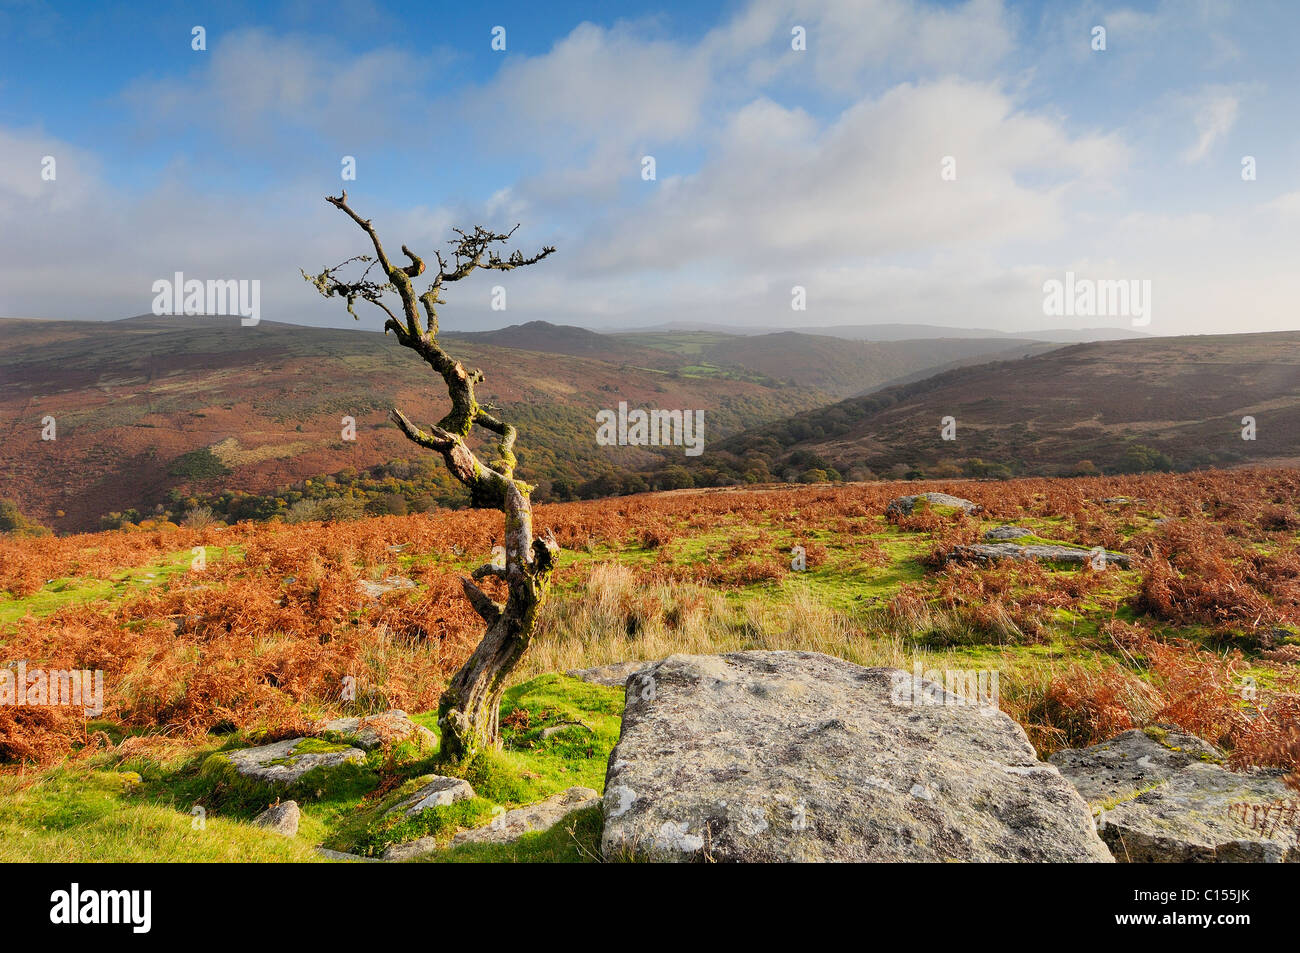 Withered Hawthorn Tree at Combestone Tor - Stock Image